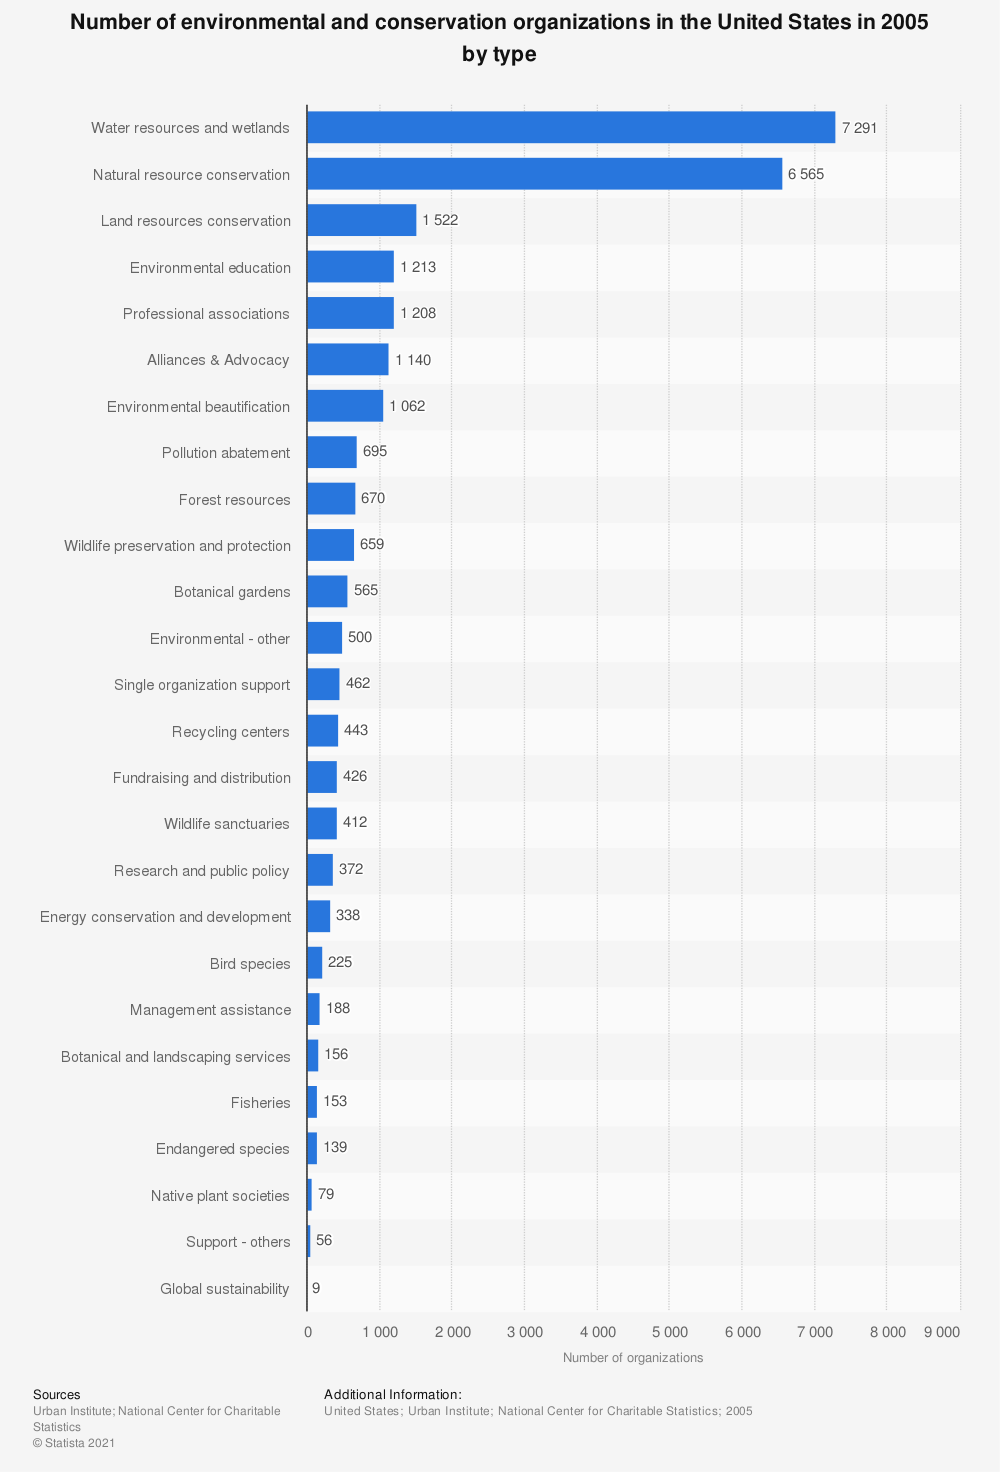 Statistic: Number of environmental and conservation organizations in the United States in 2005 by type  | Statista